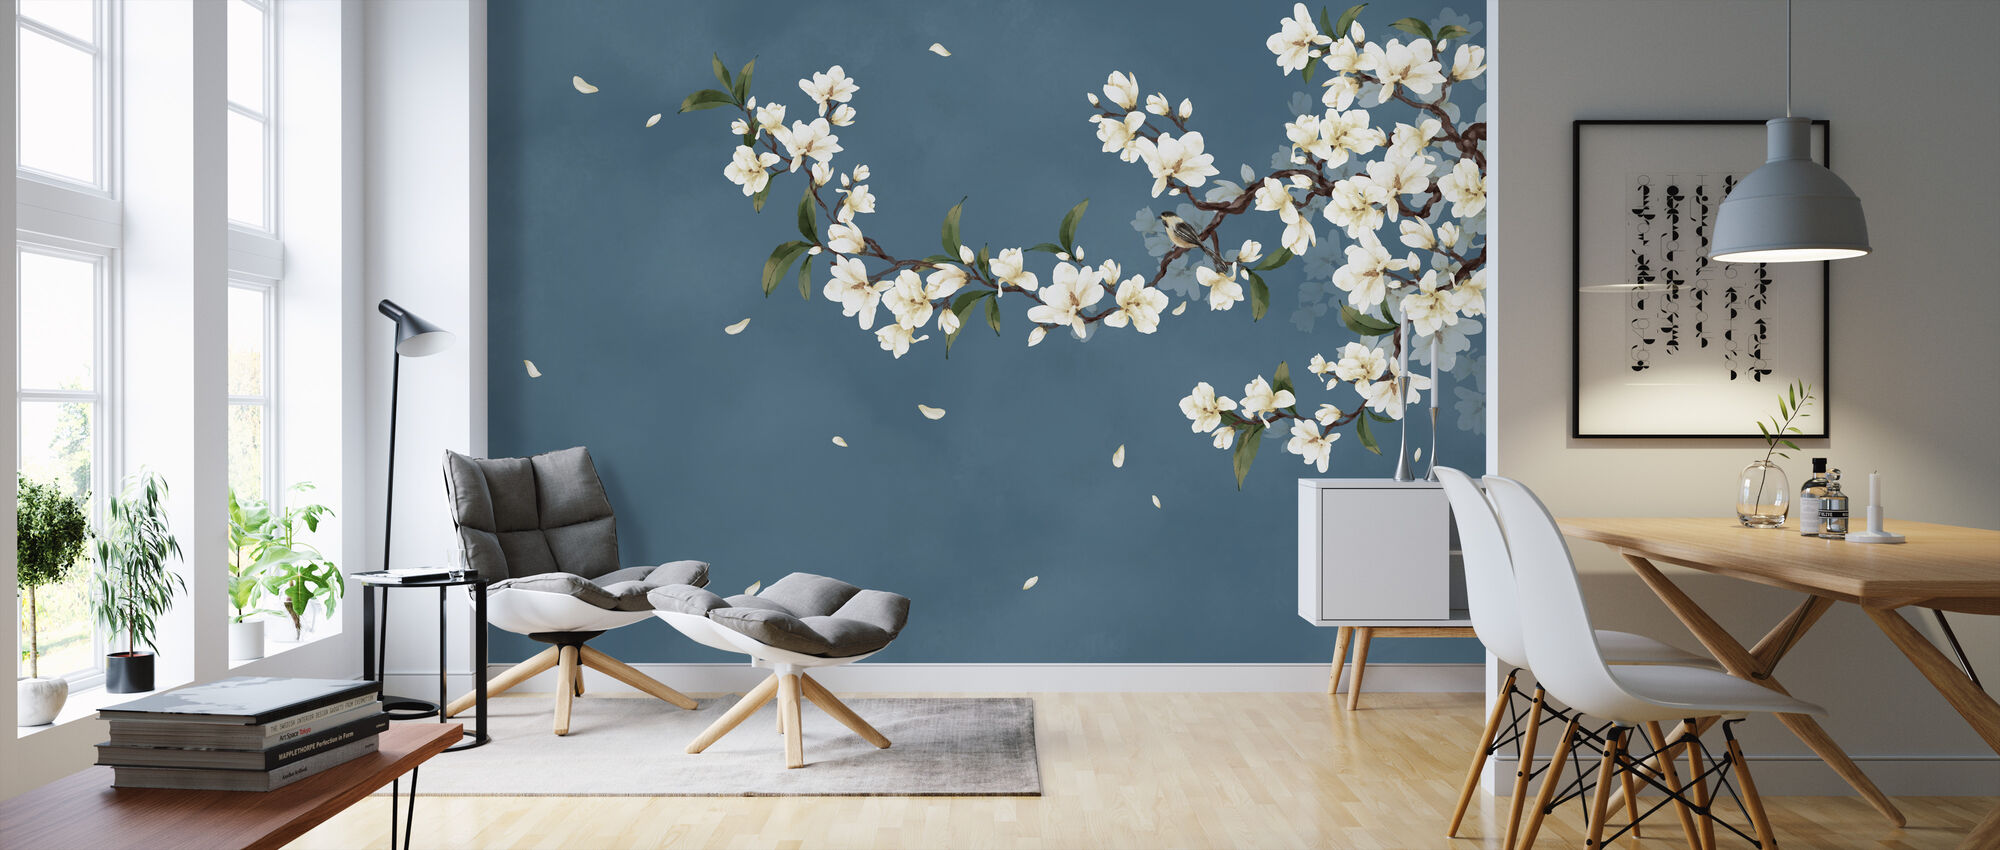 Twig - Wallpaper - Living Room